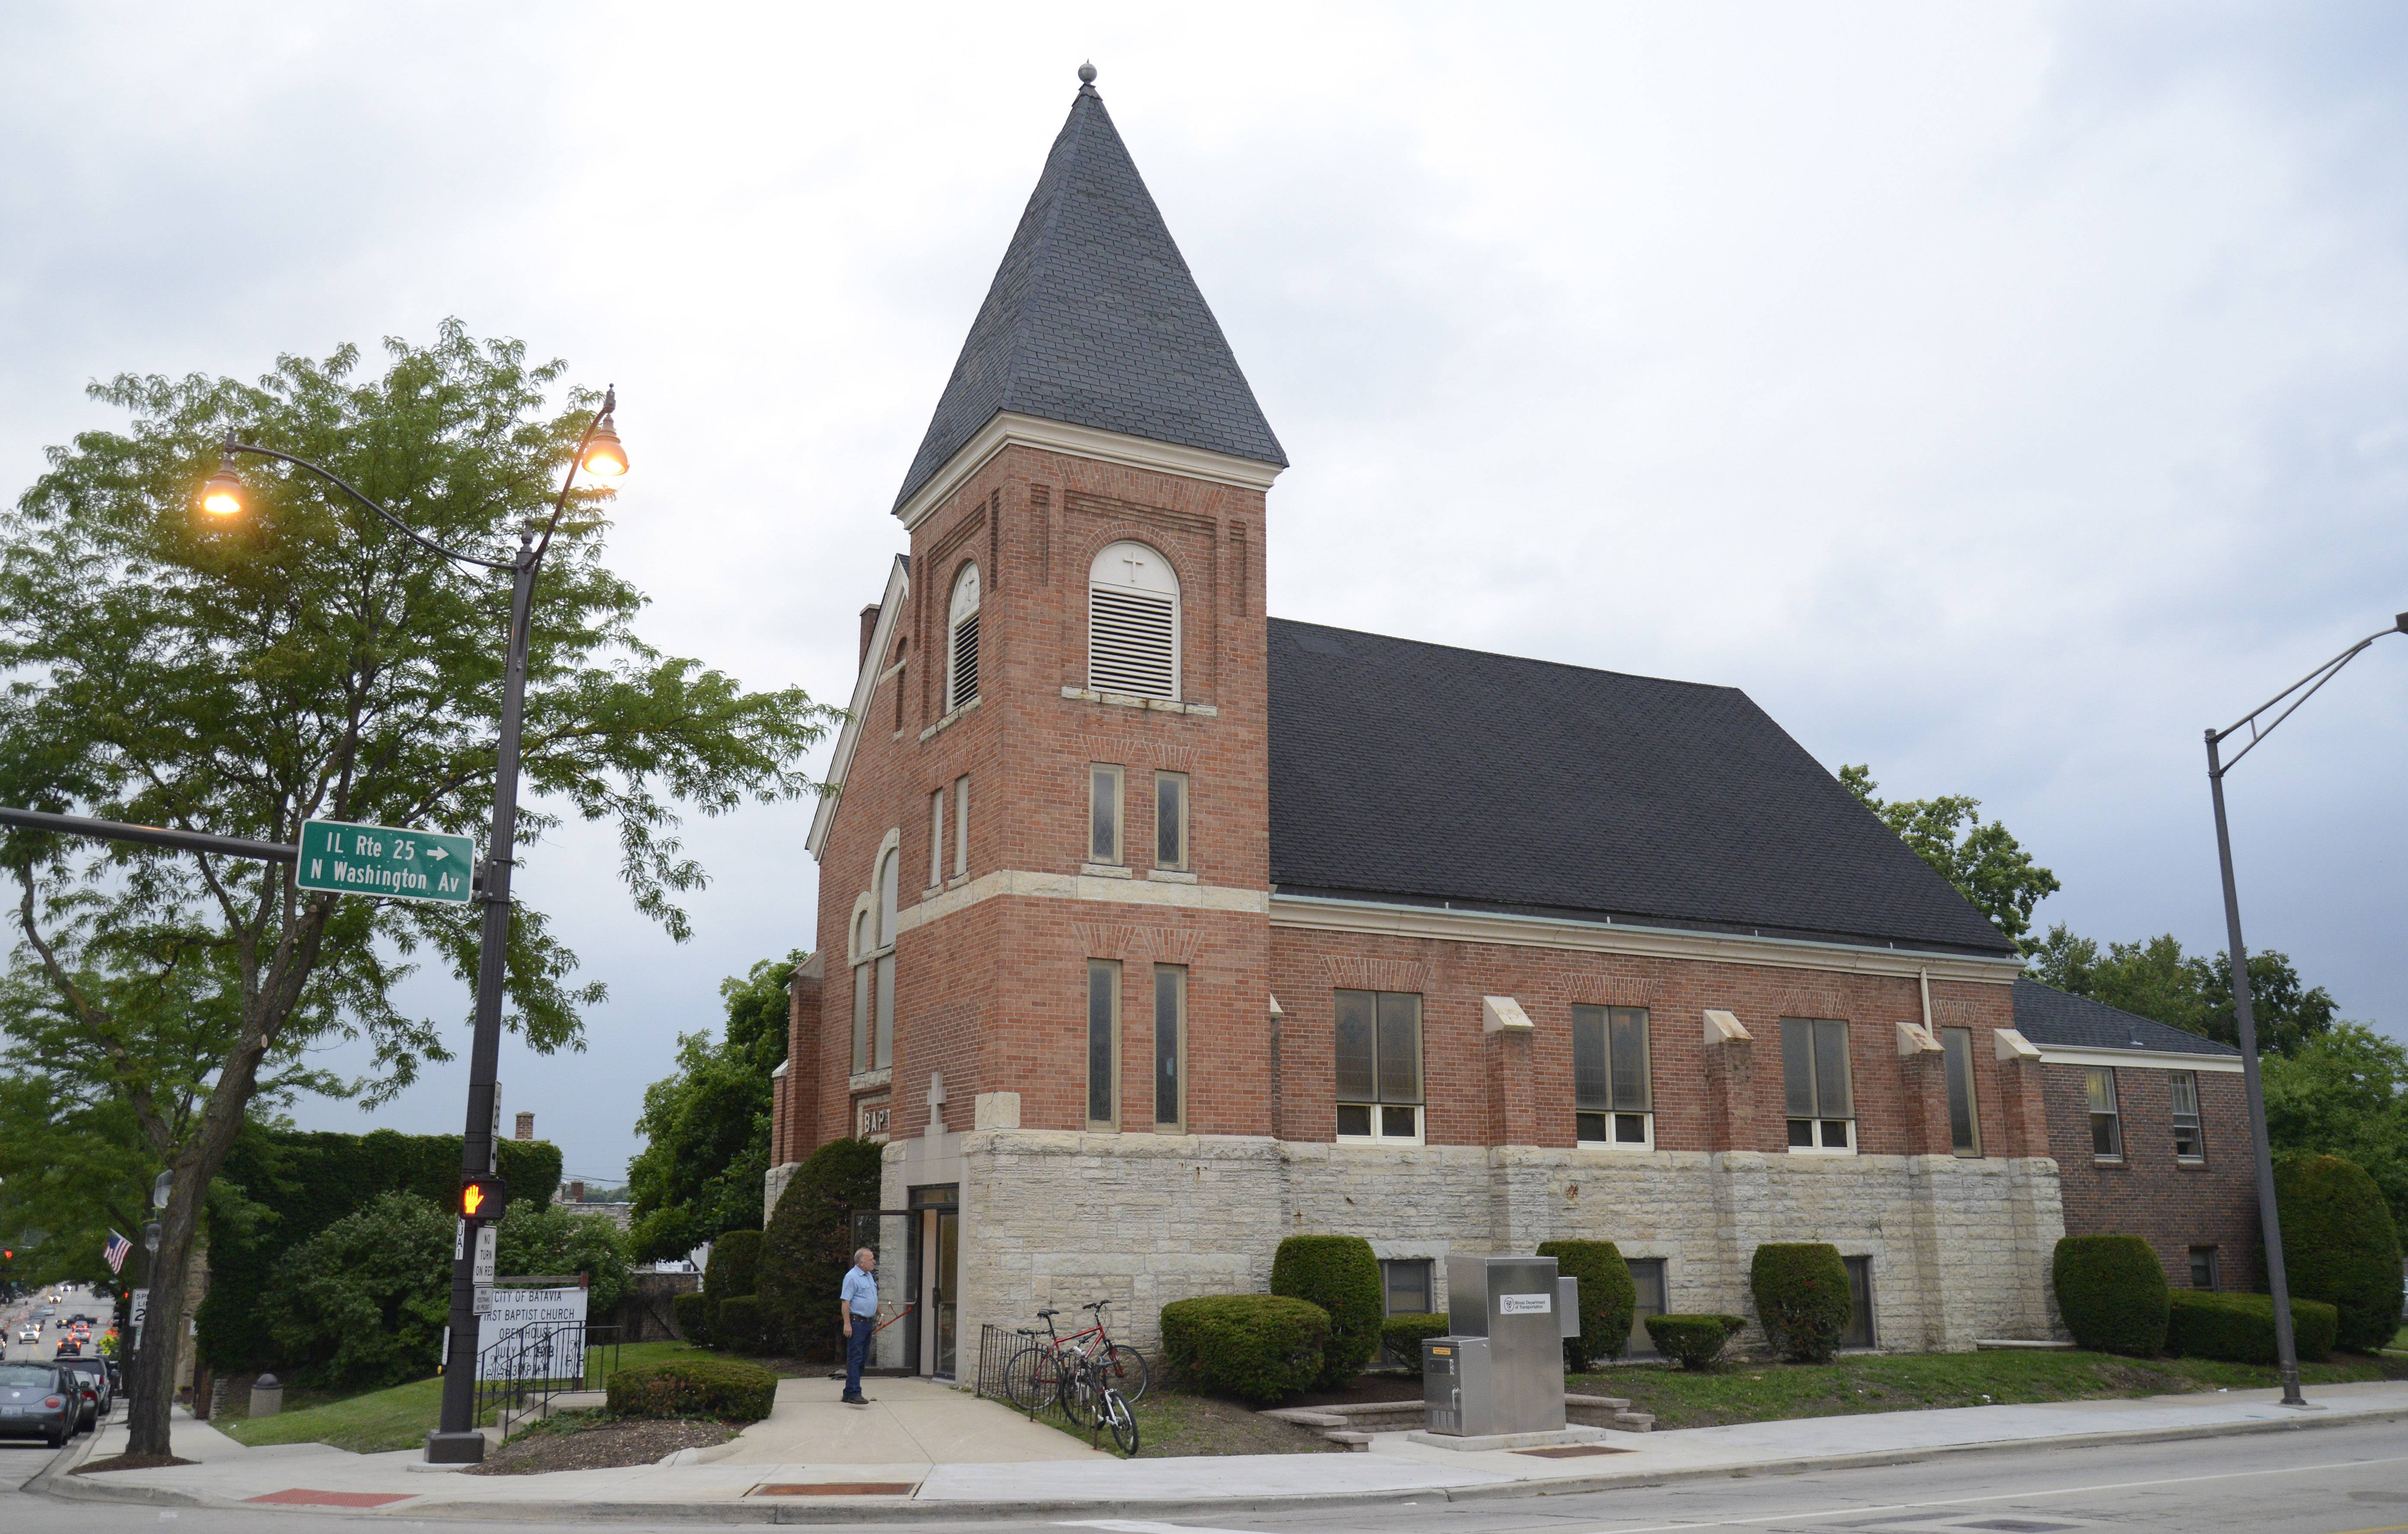 The former First Baptist Church in Batavia will be replaced by the One North Washington Place building.